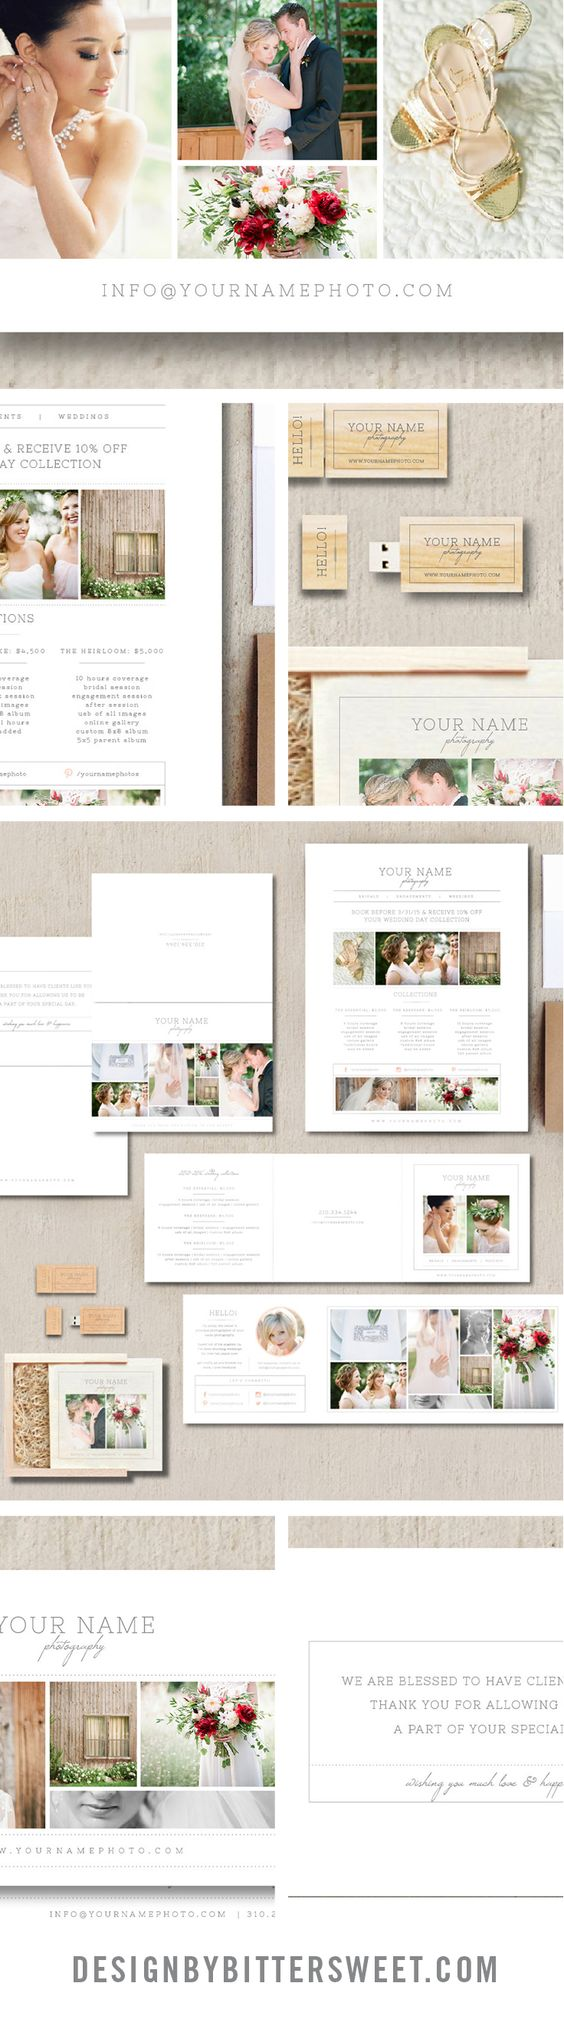 Photography Marketing Set Wedding Photographer Pricing Guide – Guide Templates